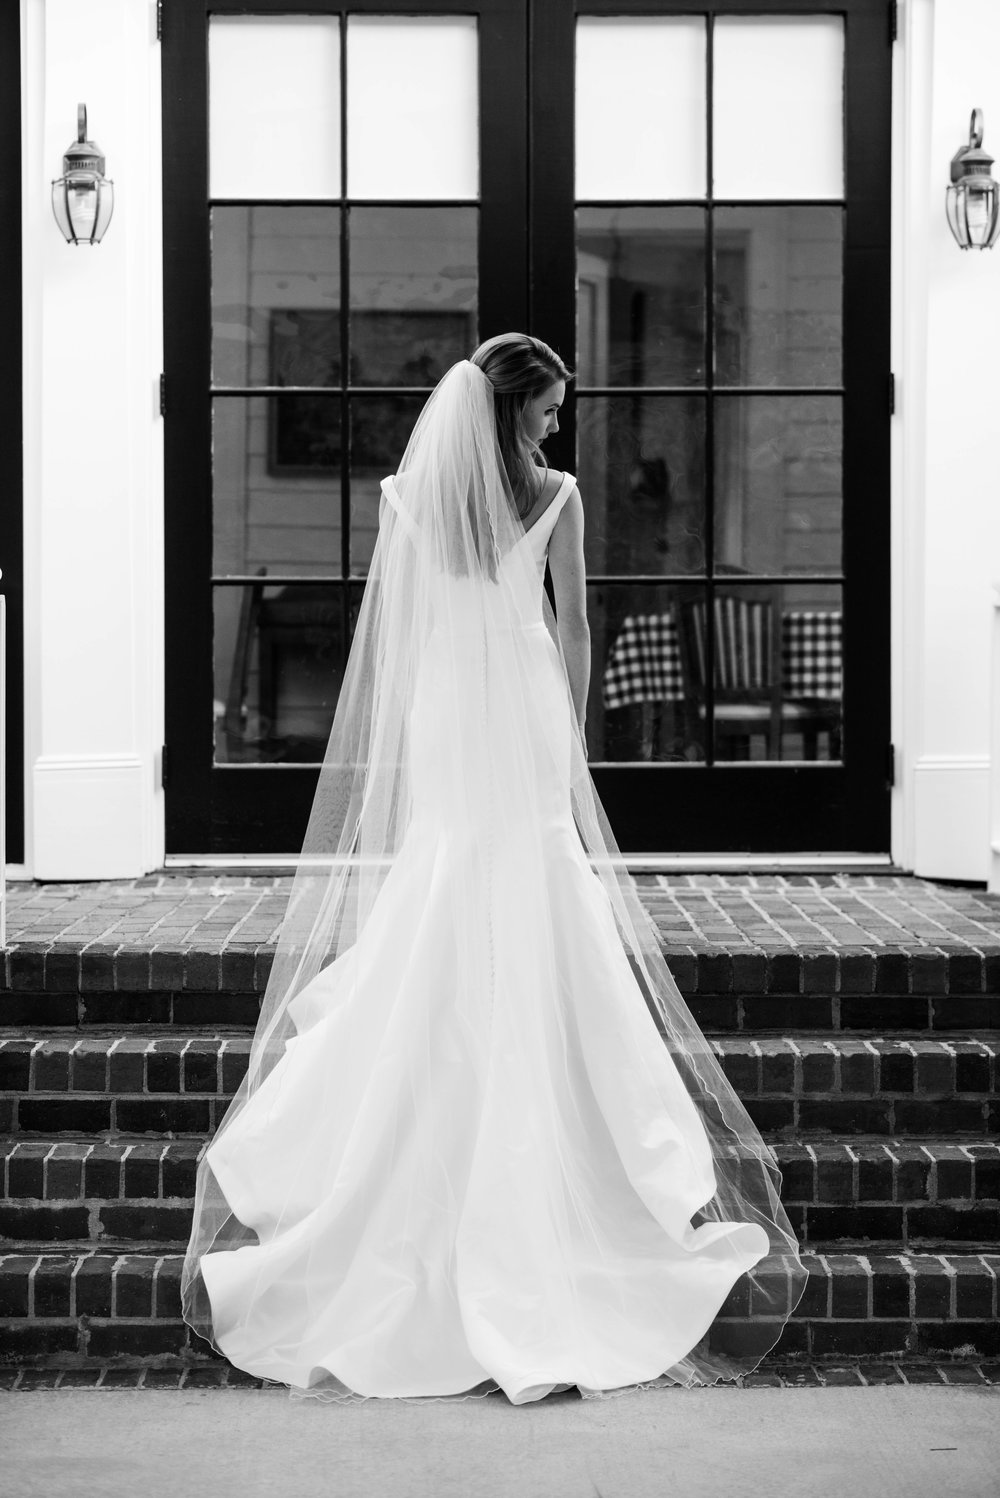 JuliaWilliams|Bridals|ZBW_MiraPhotographs-78.jpg